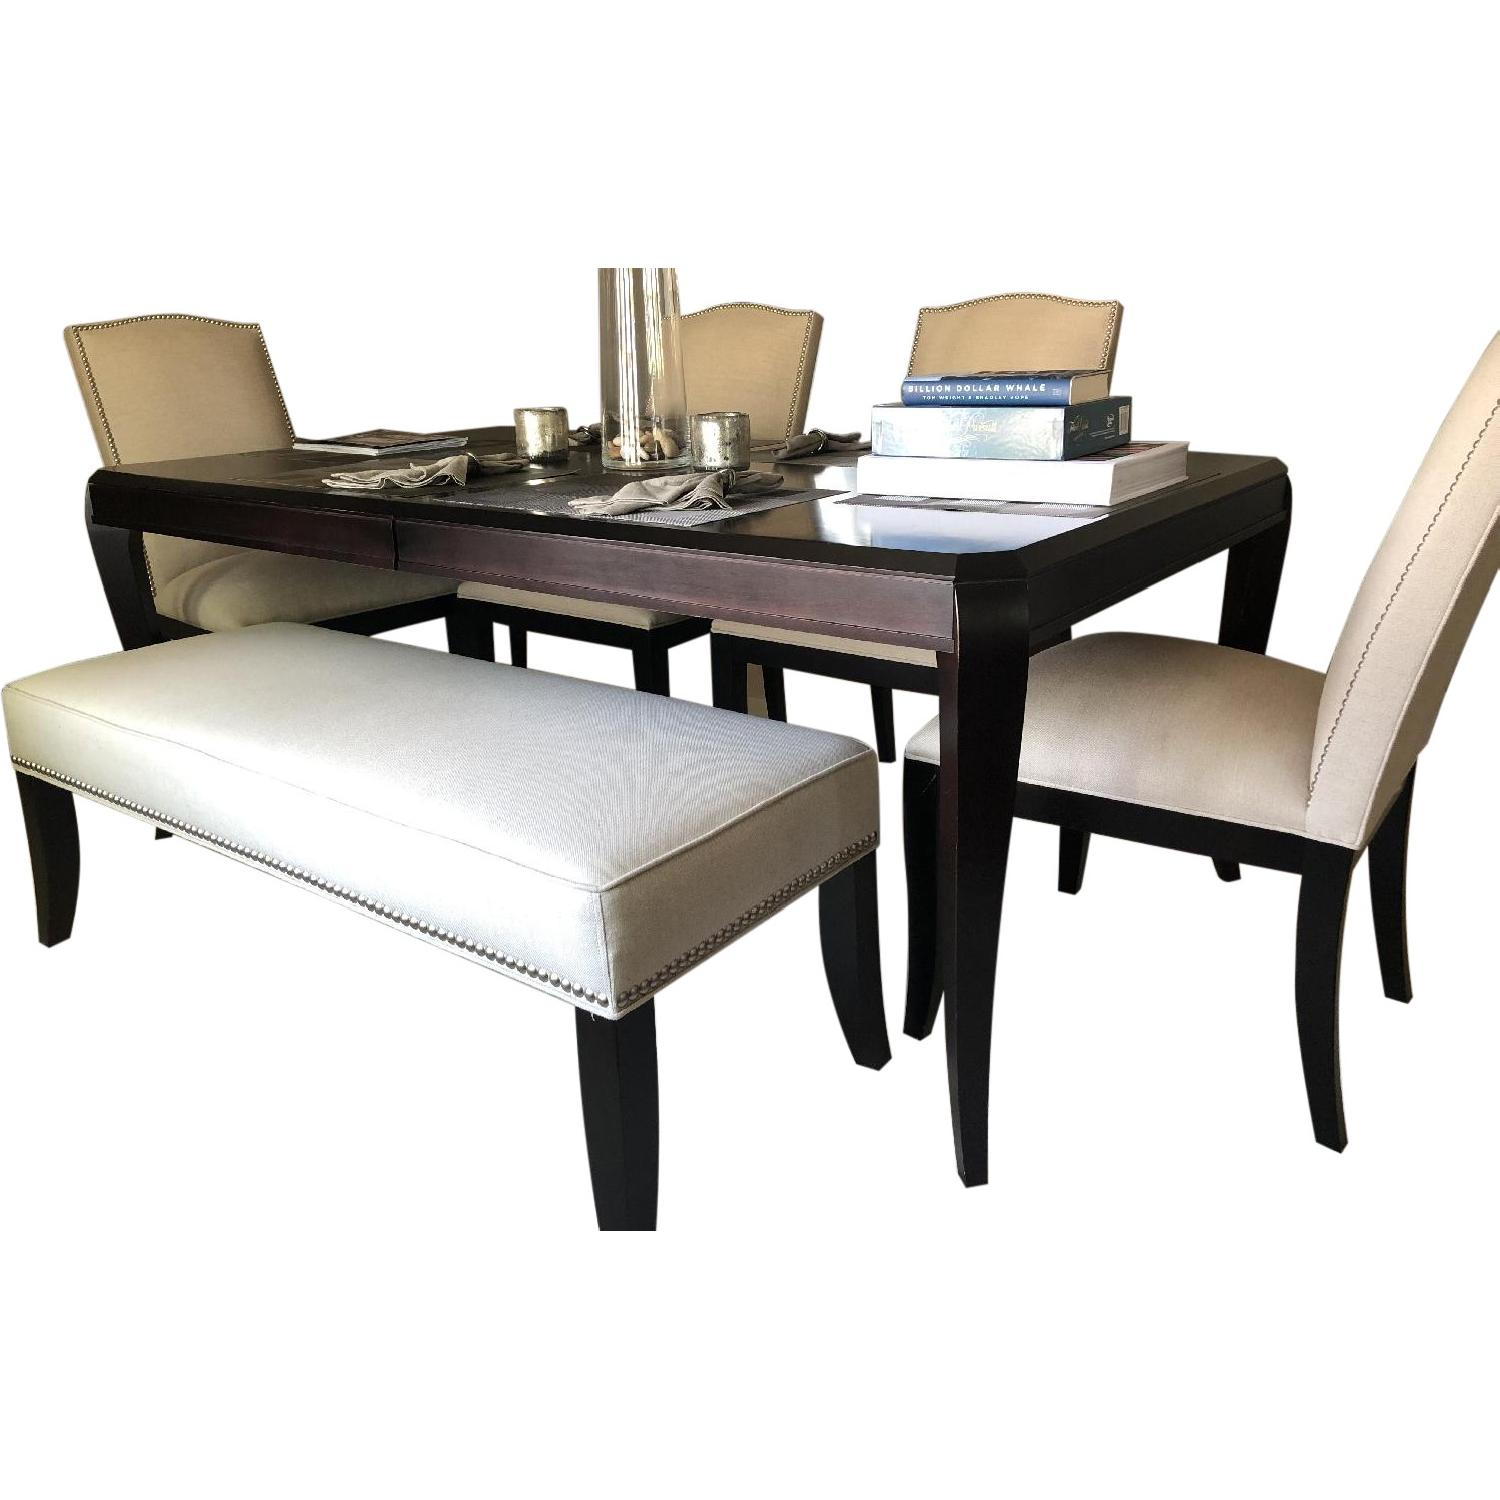 Crate & Barrel Dining Table w/ 4 Chairs & 1 Bench - image-0